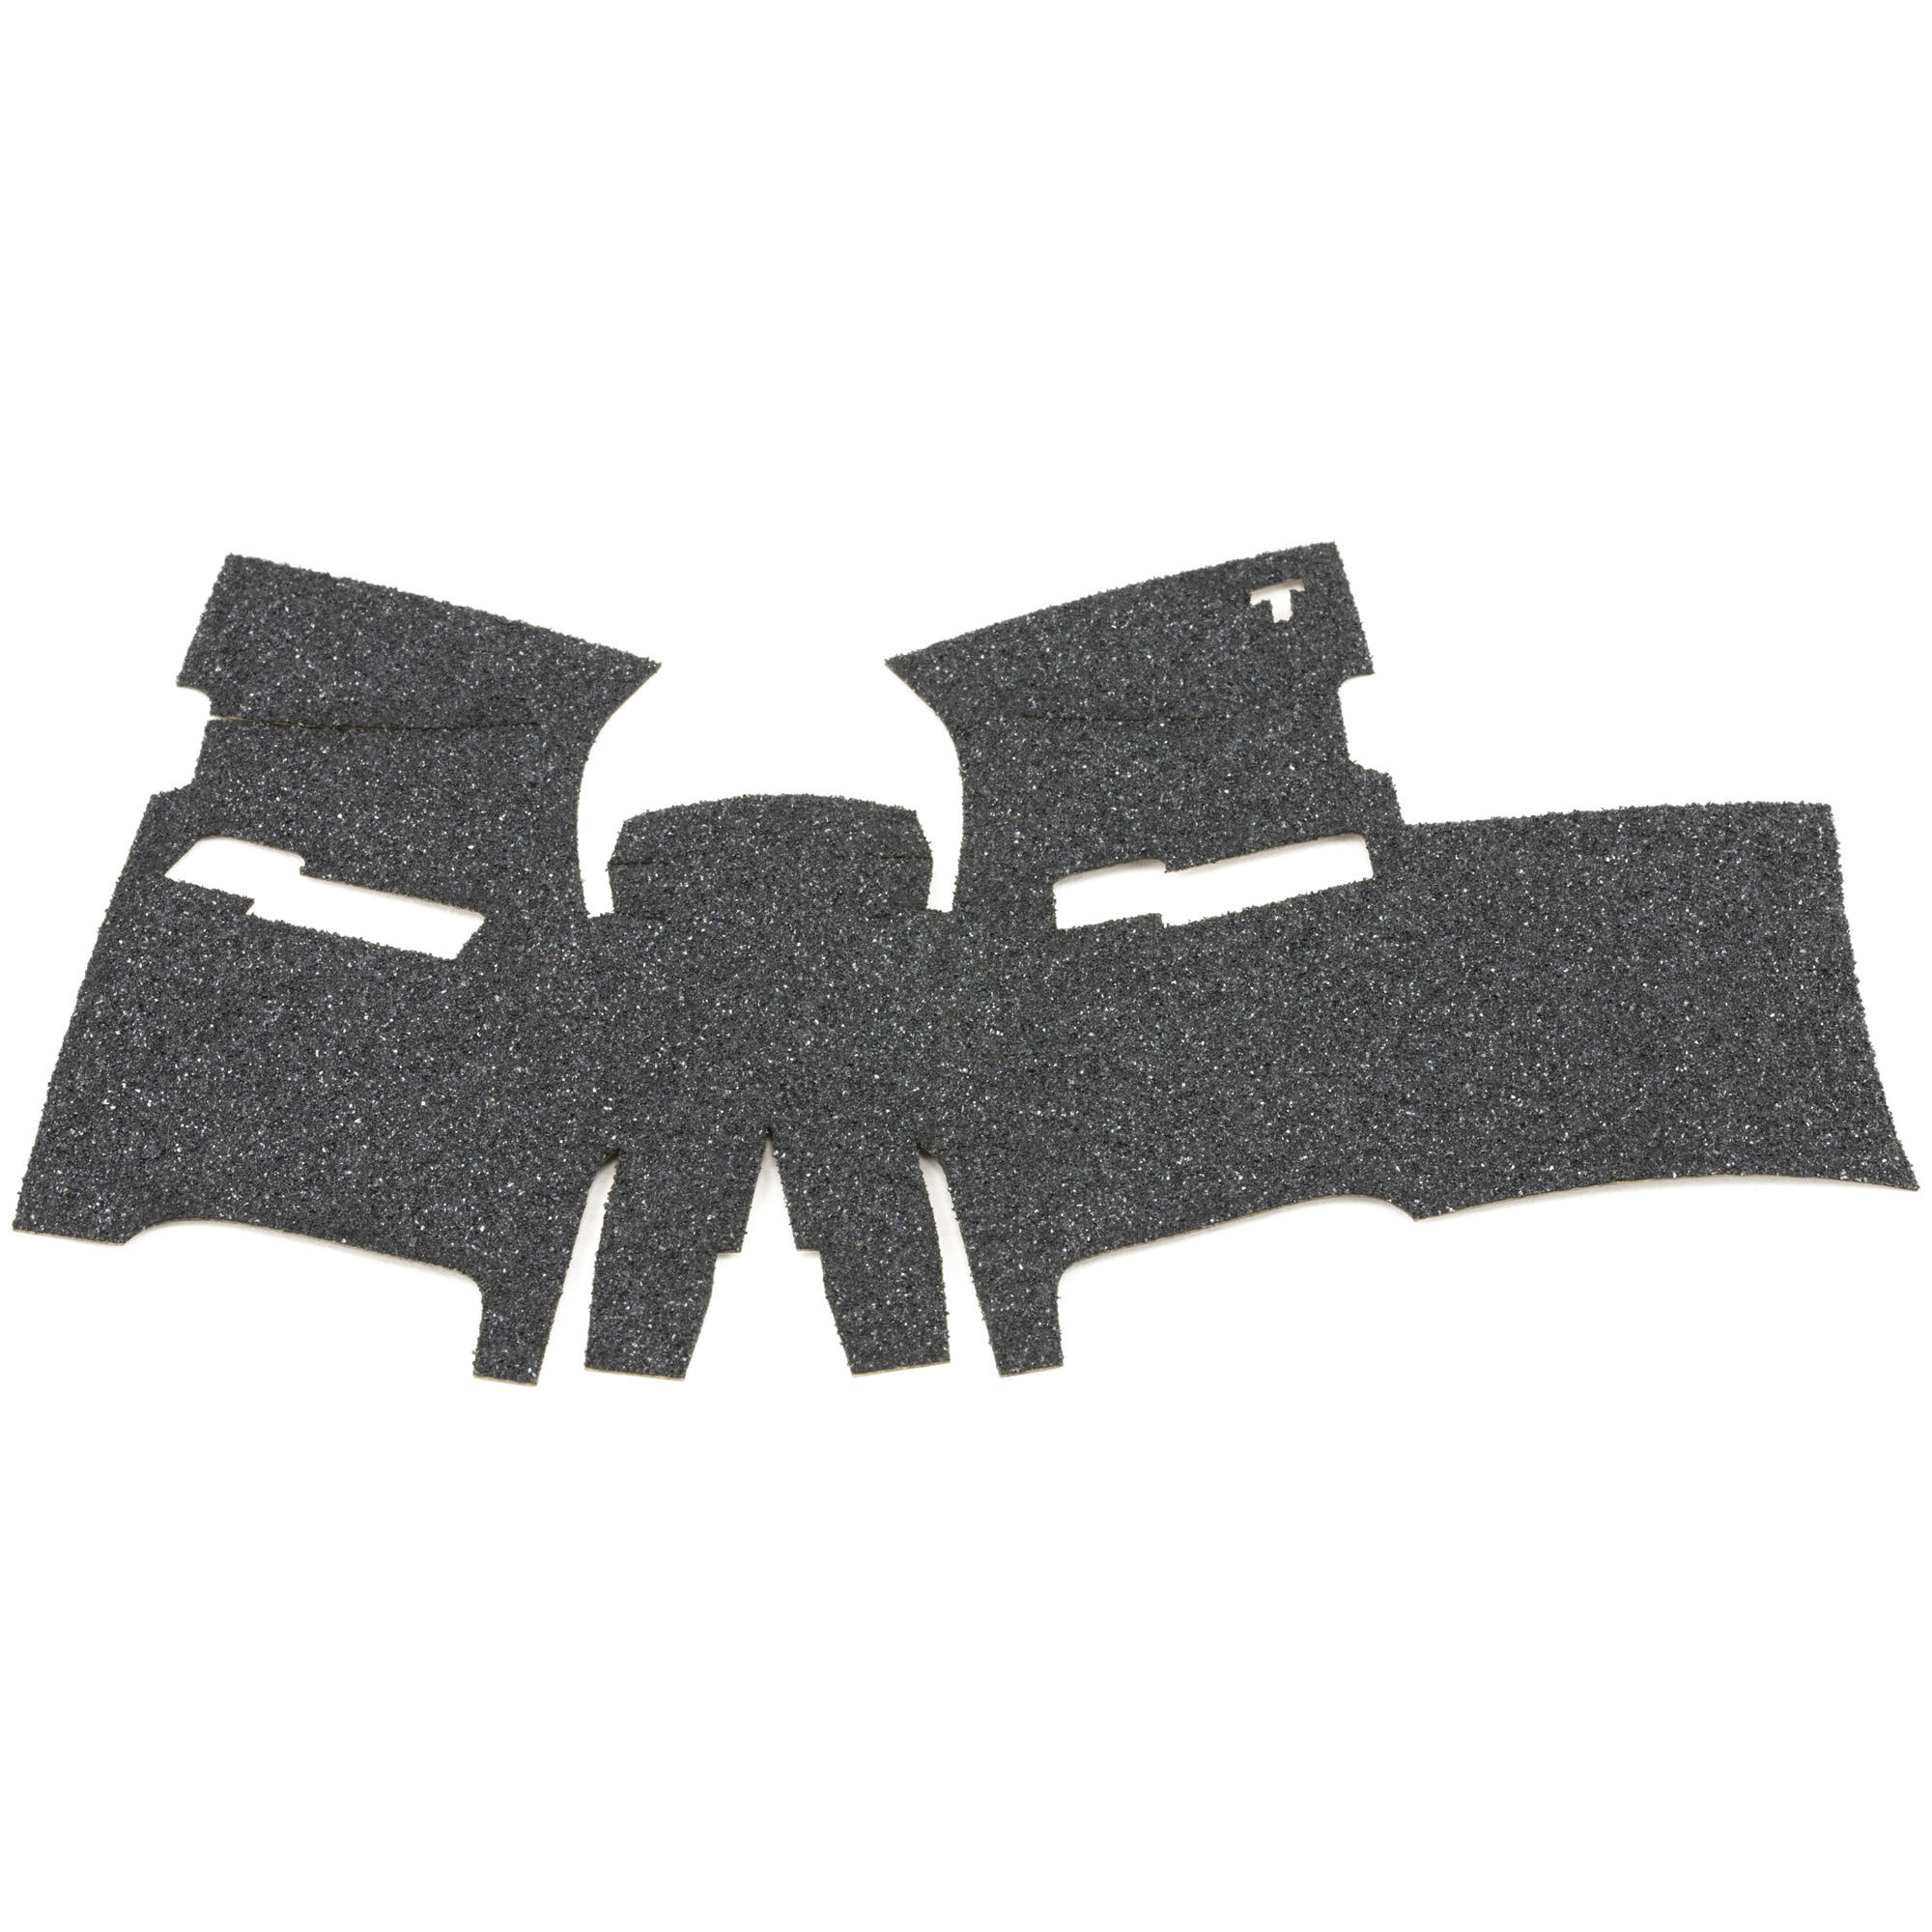 """TALON Grips for Sig Sauer P250 and P320 9mm/.357/.40./45 Compact with the medium module. This rear wrap grip is in granulate texture and offers full side panel coverage including the thumb rest area"""" full coverage under the trigger guard"""" and high coverage on the backstrap. This grip has a graphic cutout for the Sig Sauer emblem."""